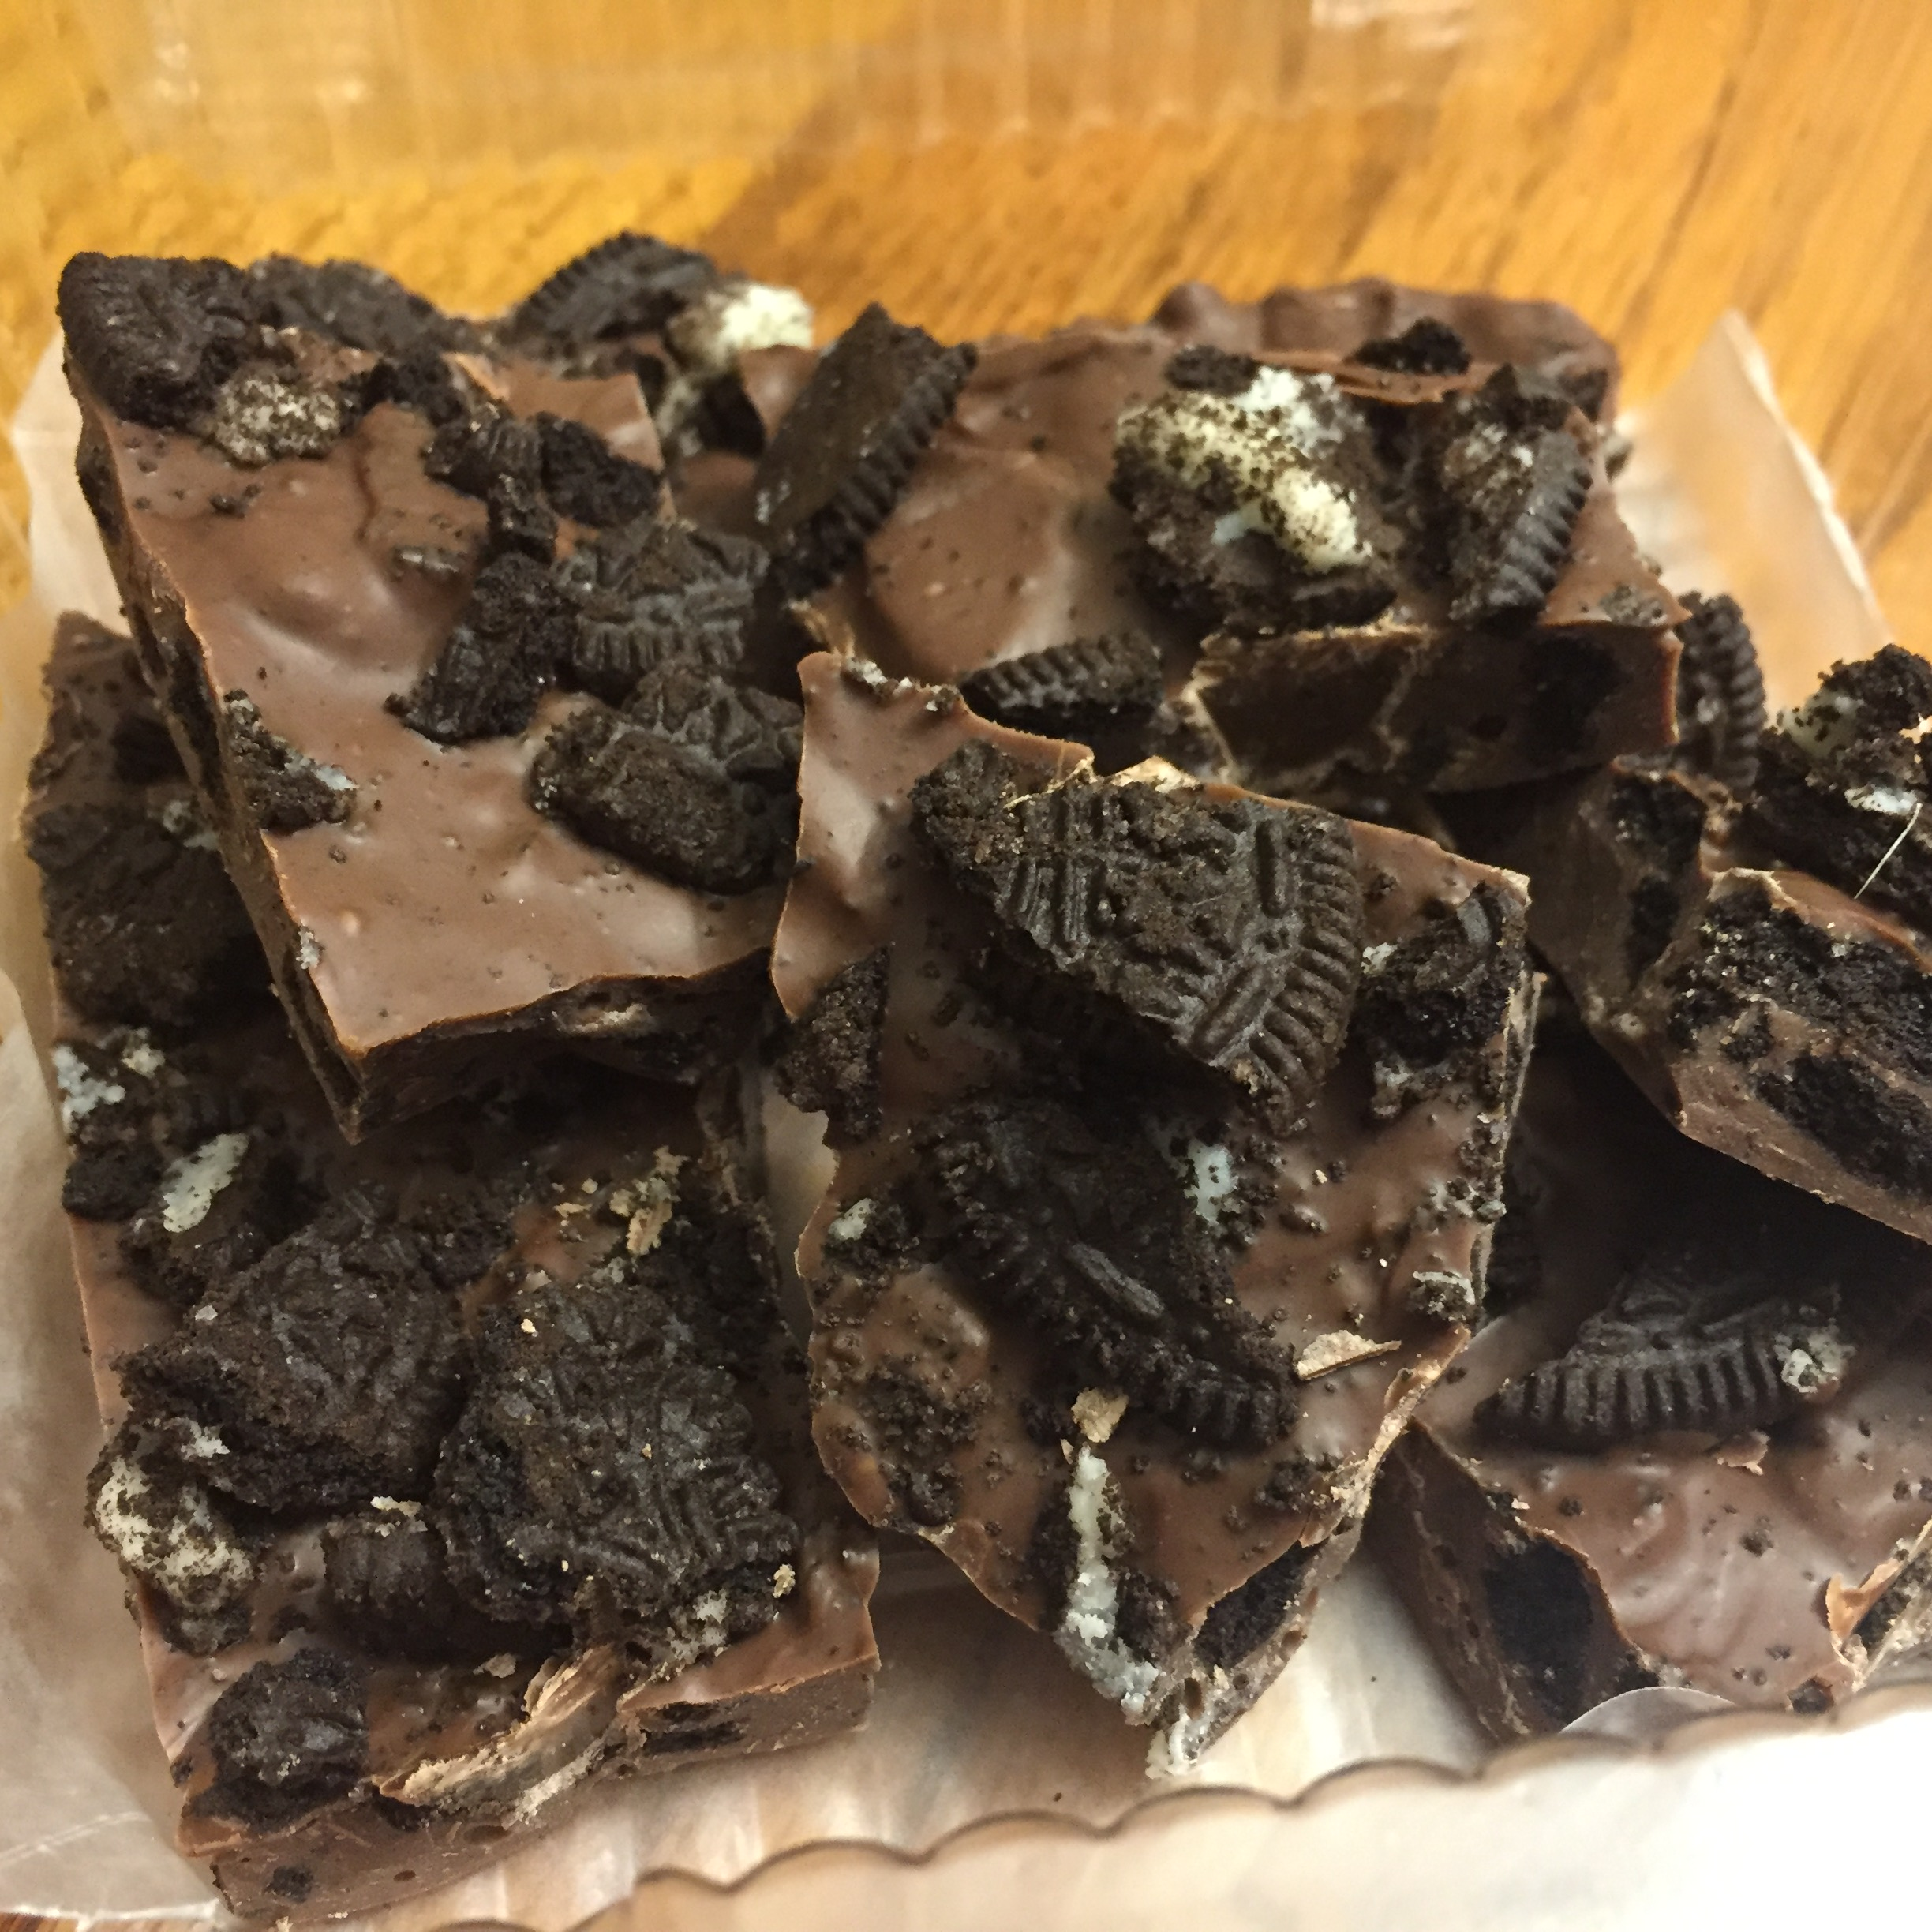 photo of some chocolate cookies and cream bark from cocos confections